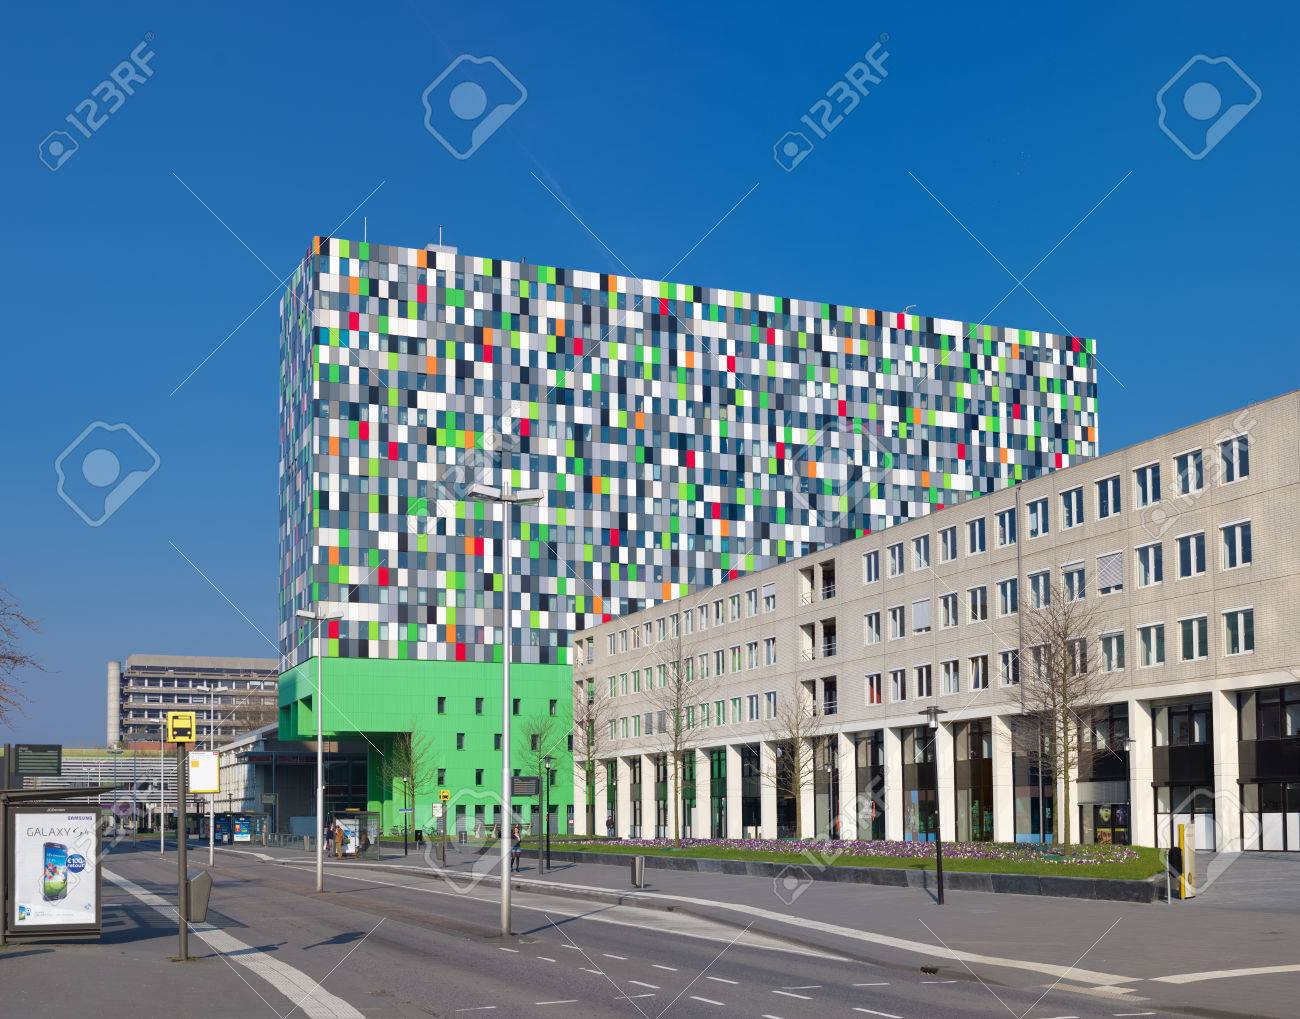 Modern Architecture Netherlands modern architecture on the campus of the utrecht university in